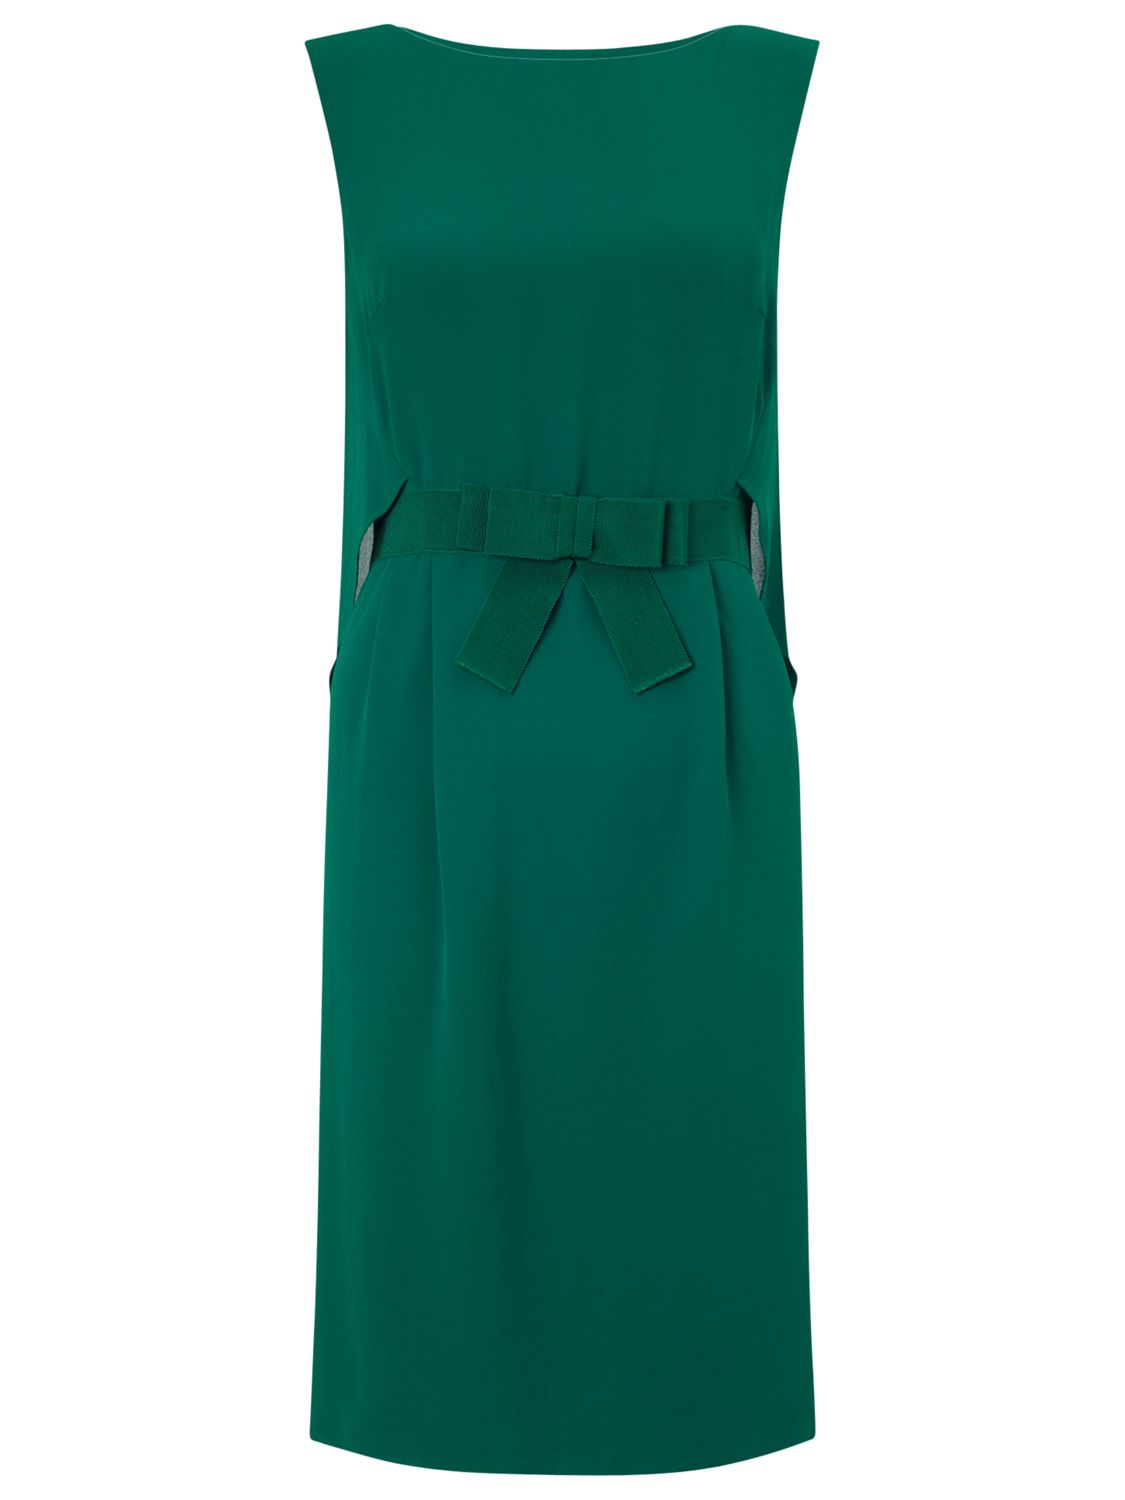 phase eight juney bow dress lagoon, phase, eight, juney, bow, dress, lagoon, phase eight, 6|18|16|10|14|12|8, women, womens dresses, new in clothing, gifts, wedding, wedding clothing, female guests, adult bridesmaids, fashion magazine, brands l-z, inactive womenswear, 1941183